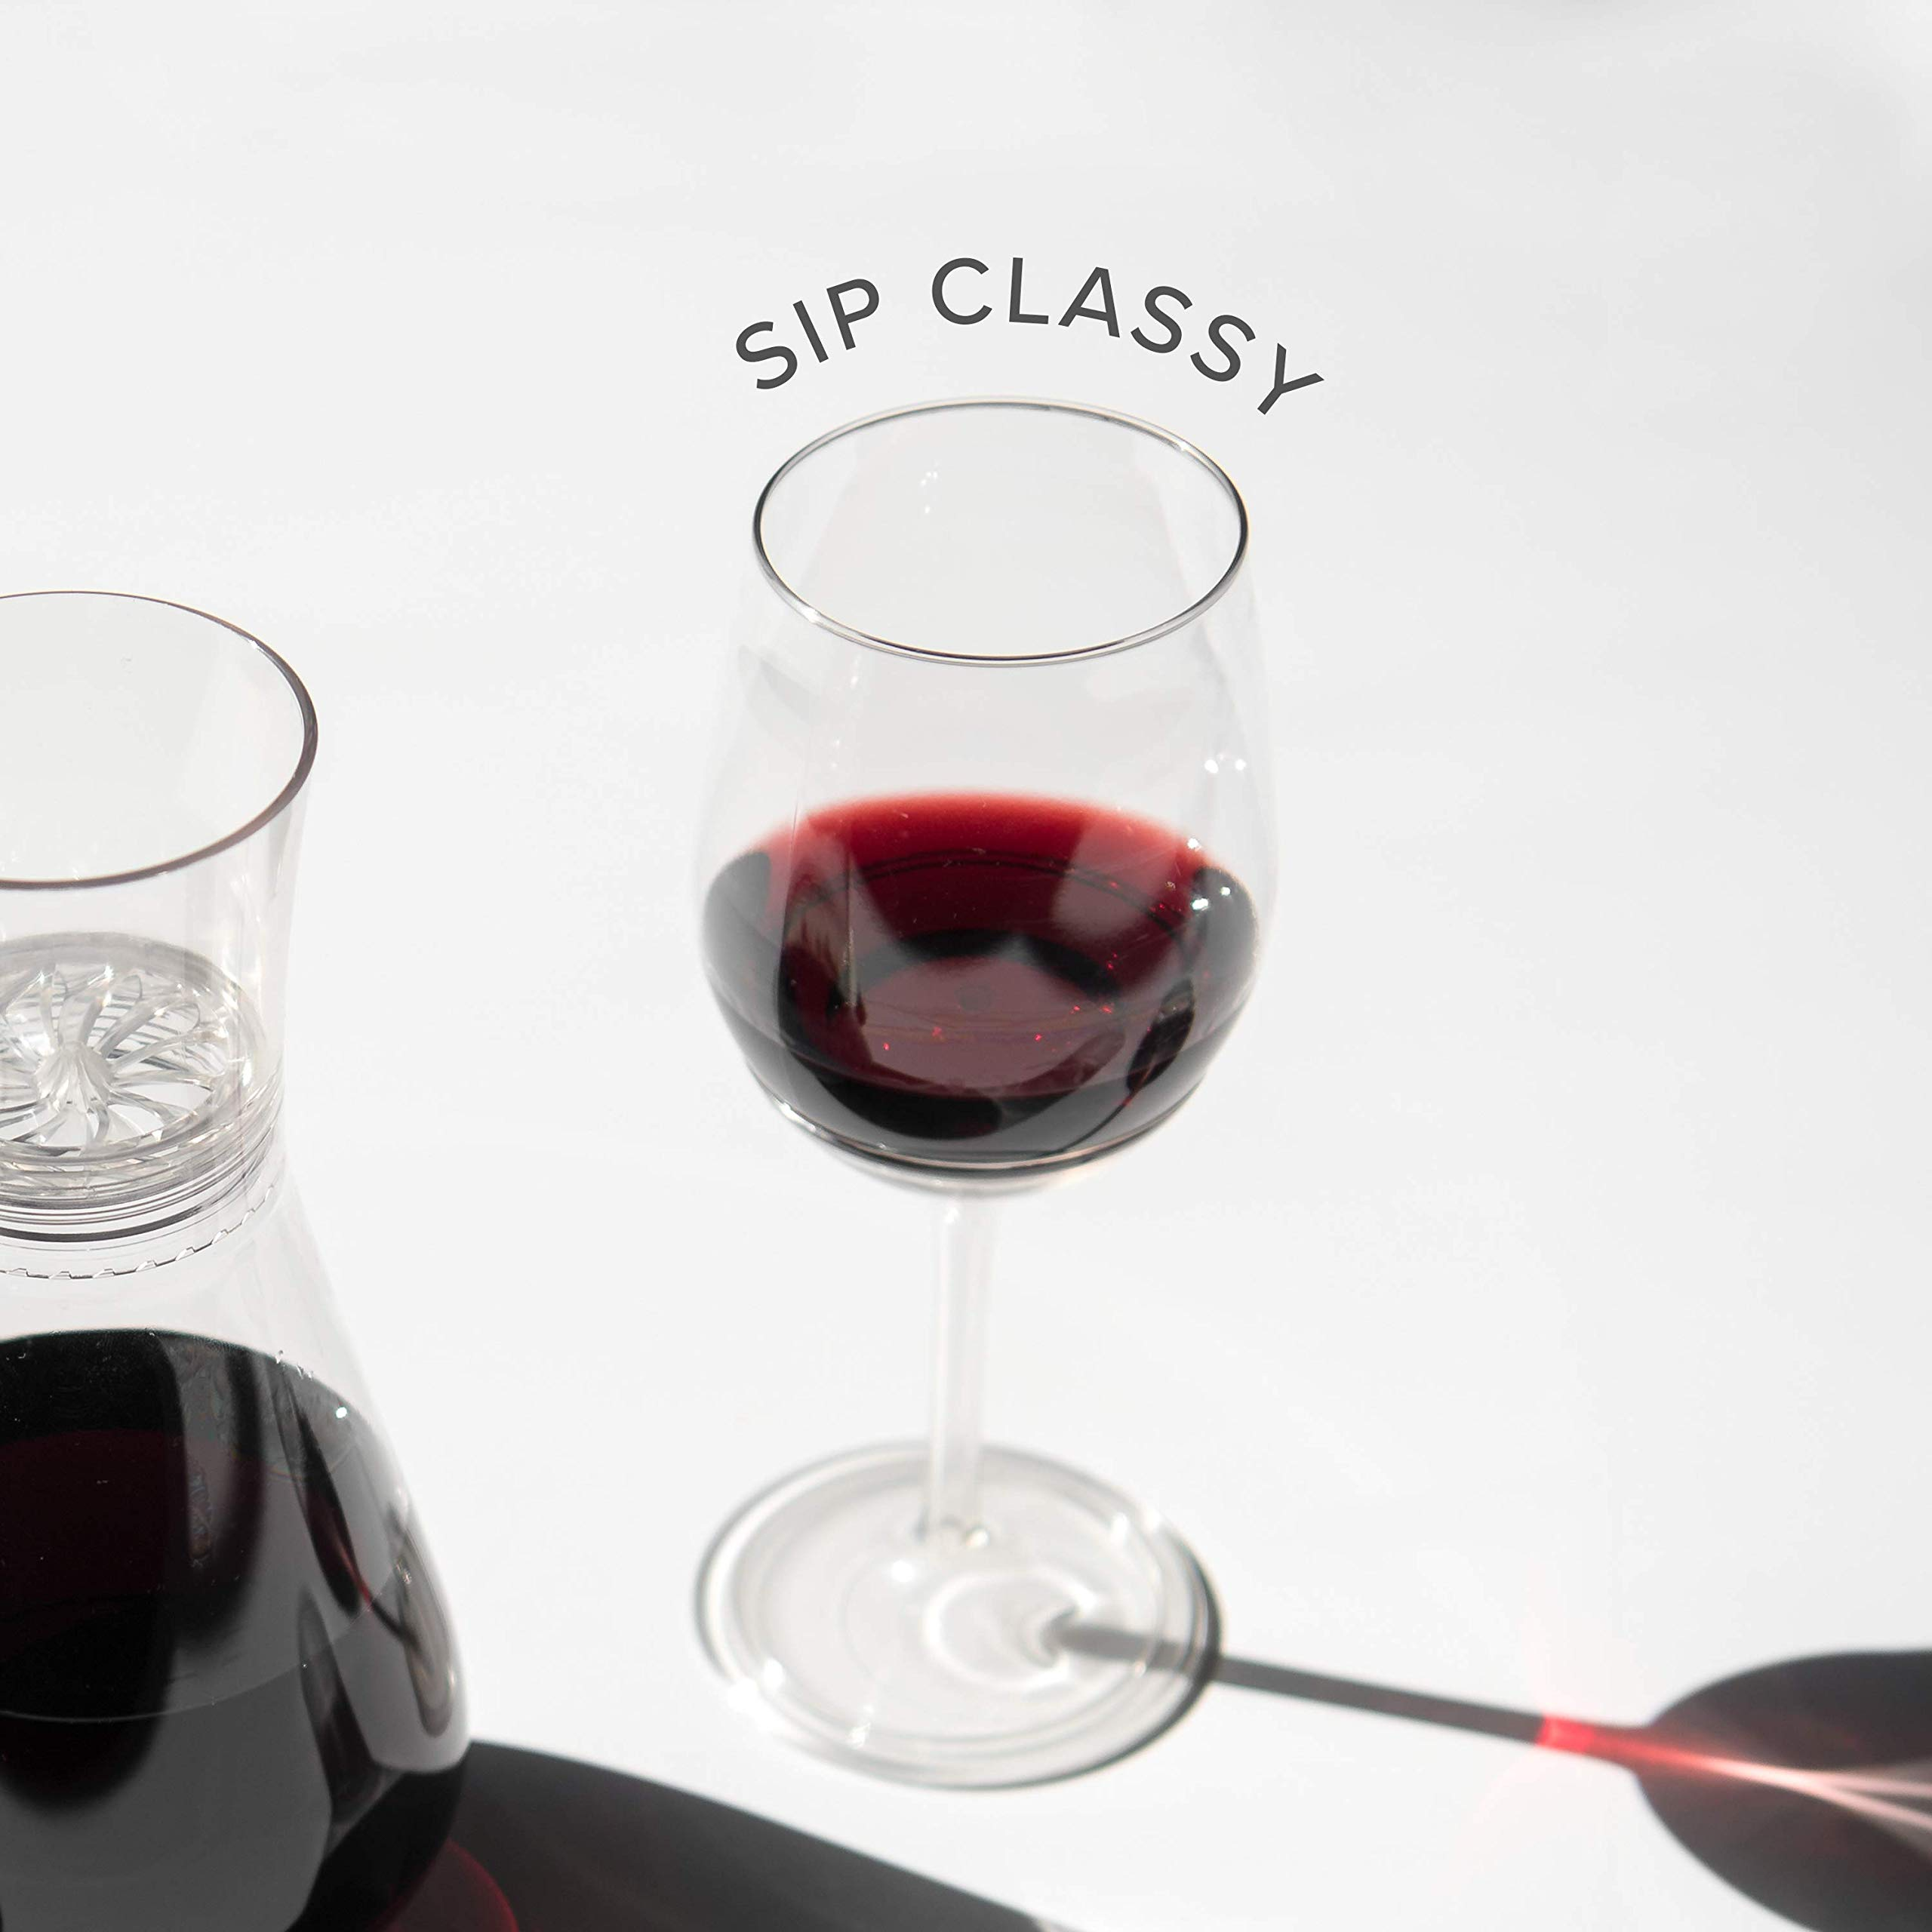 TOSSWARE 14oz Stemmed Vino- recyclable wine plastic cup -SET OF 12- detachable stem, shatterproof, and BPA-free wine glasses by TOSSWARE (Image #7)